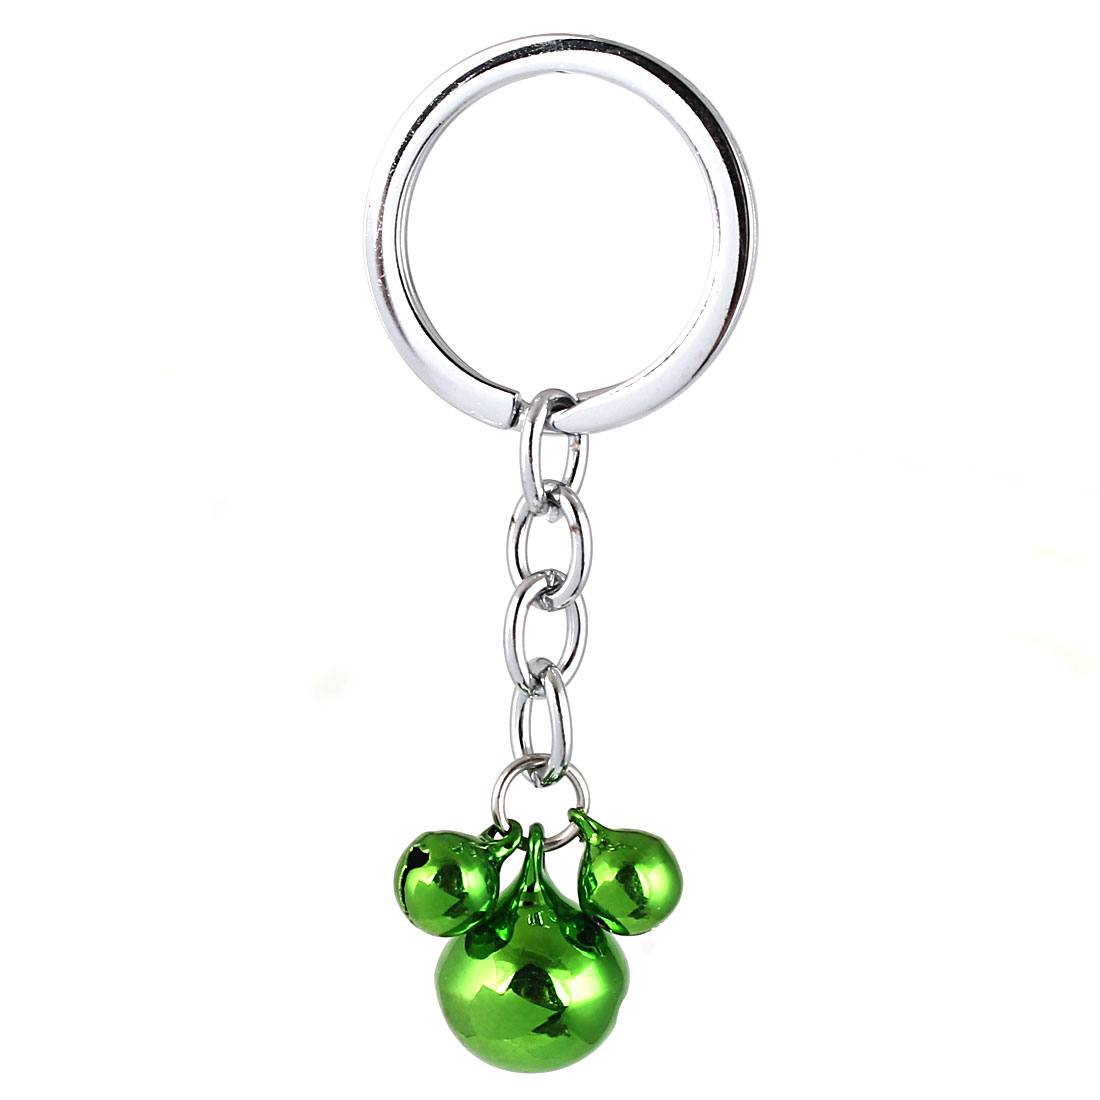 Metal Mouse Shape Bell Pendant Ring Chain Keyring Bag Decor Green